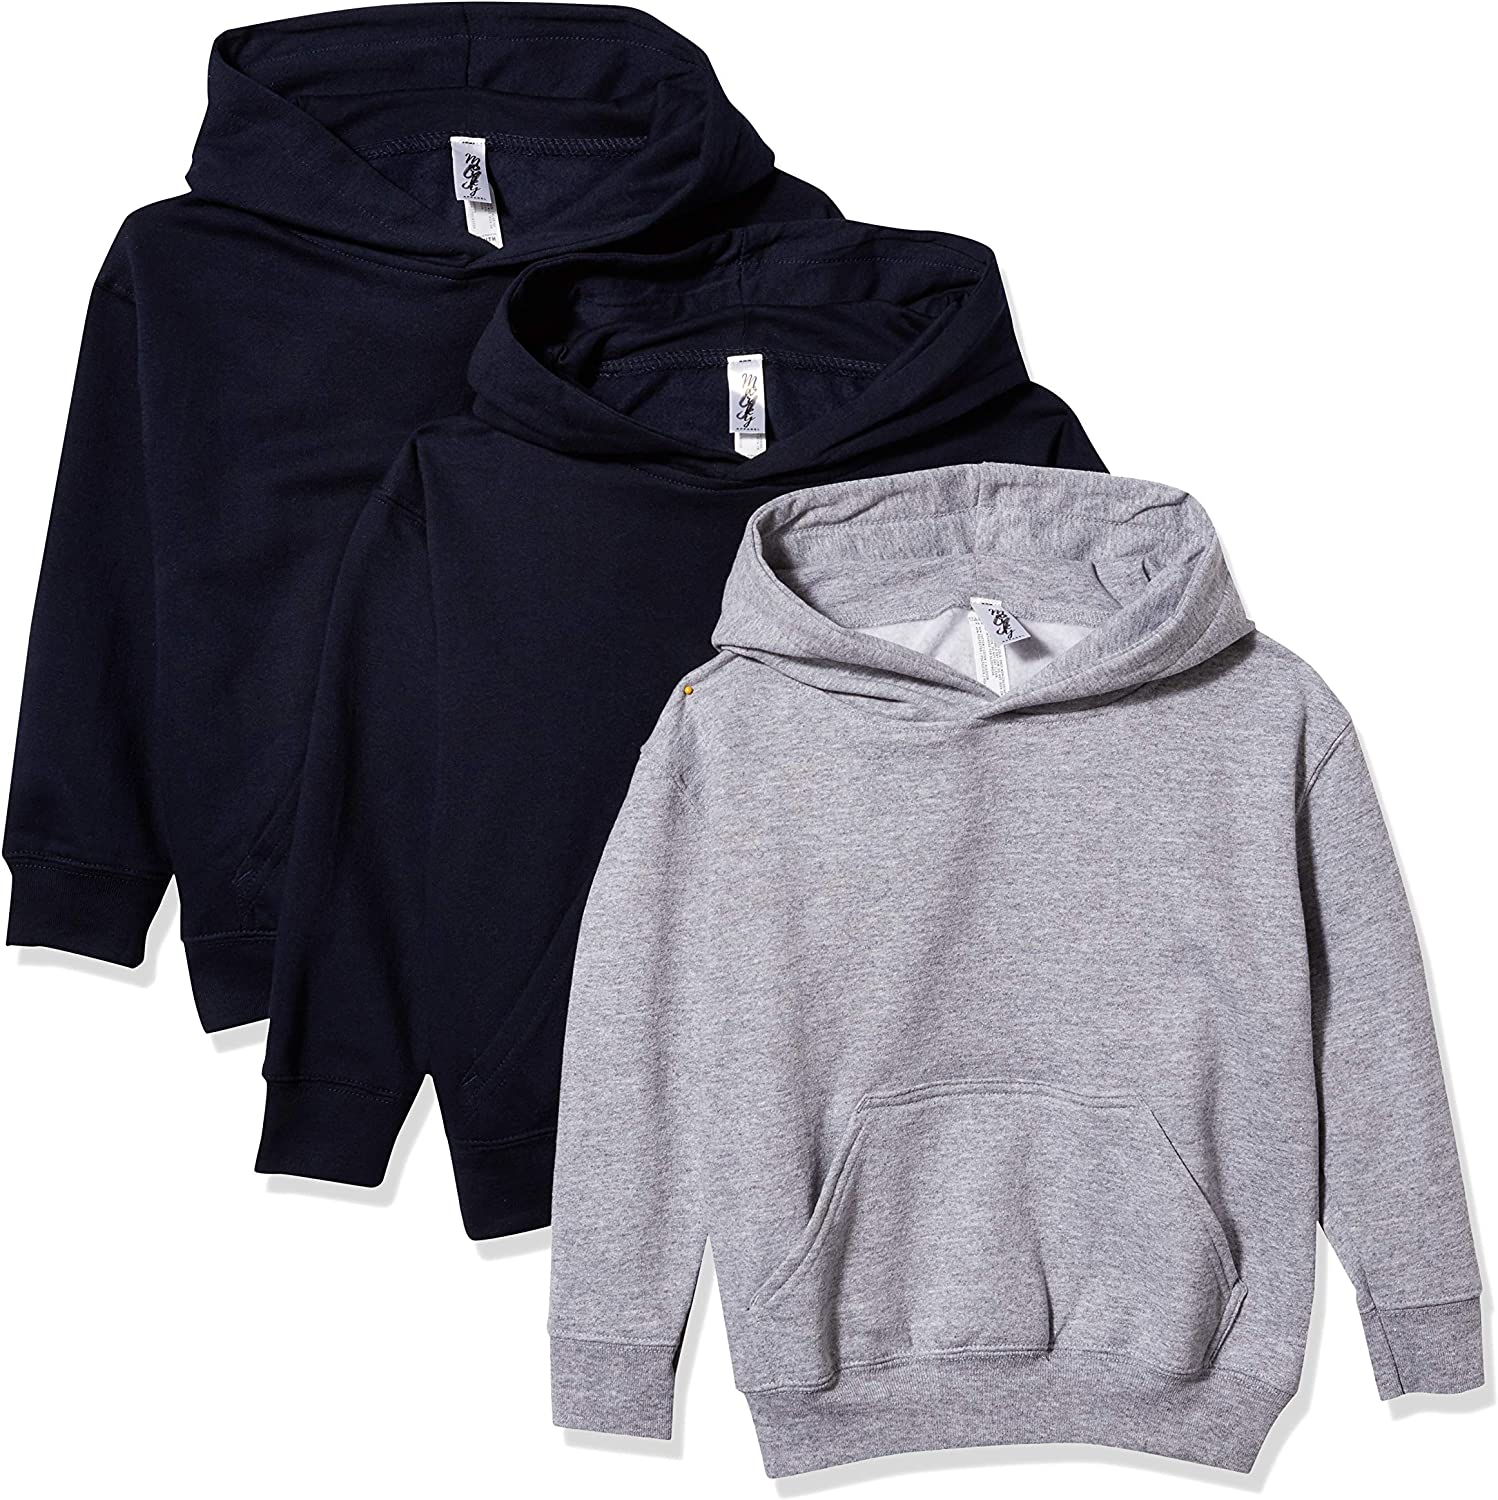 Marky Be super welcome G Apparel Boys' Fleece Long Hoodie Pullover Pack Phoenix Mall o Sleeve